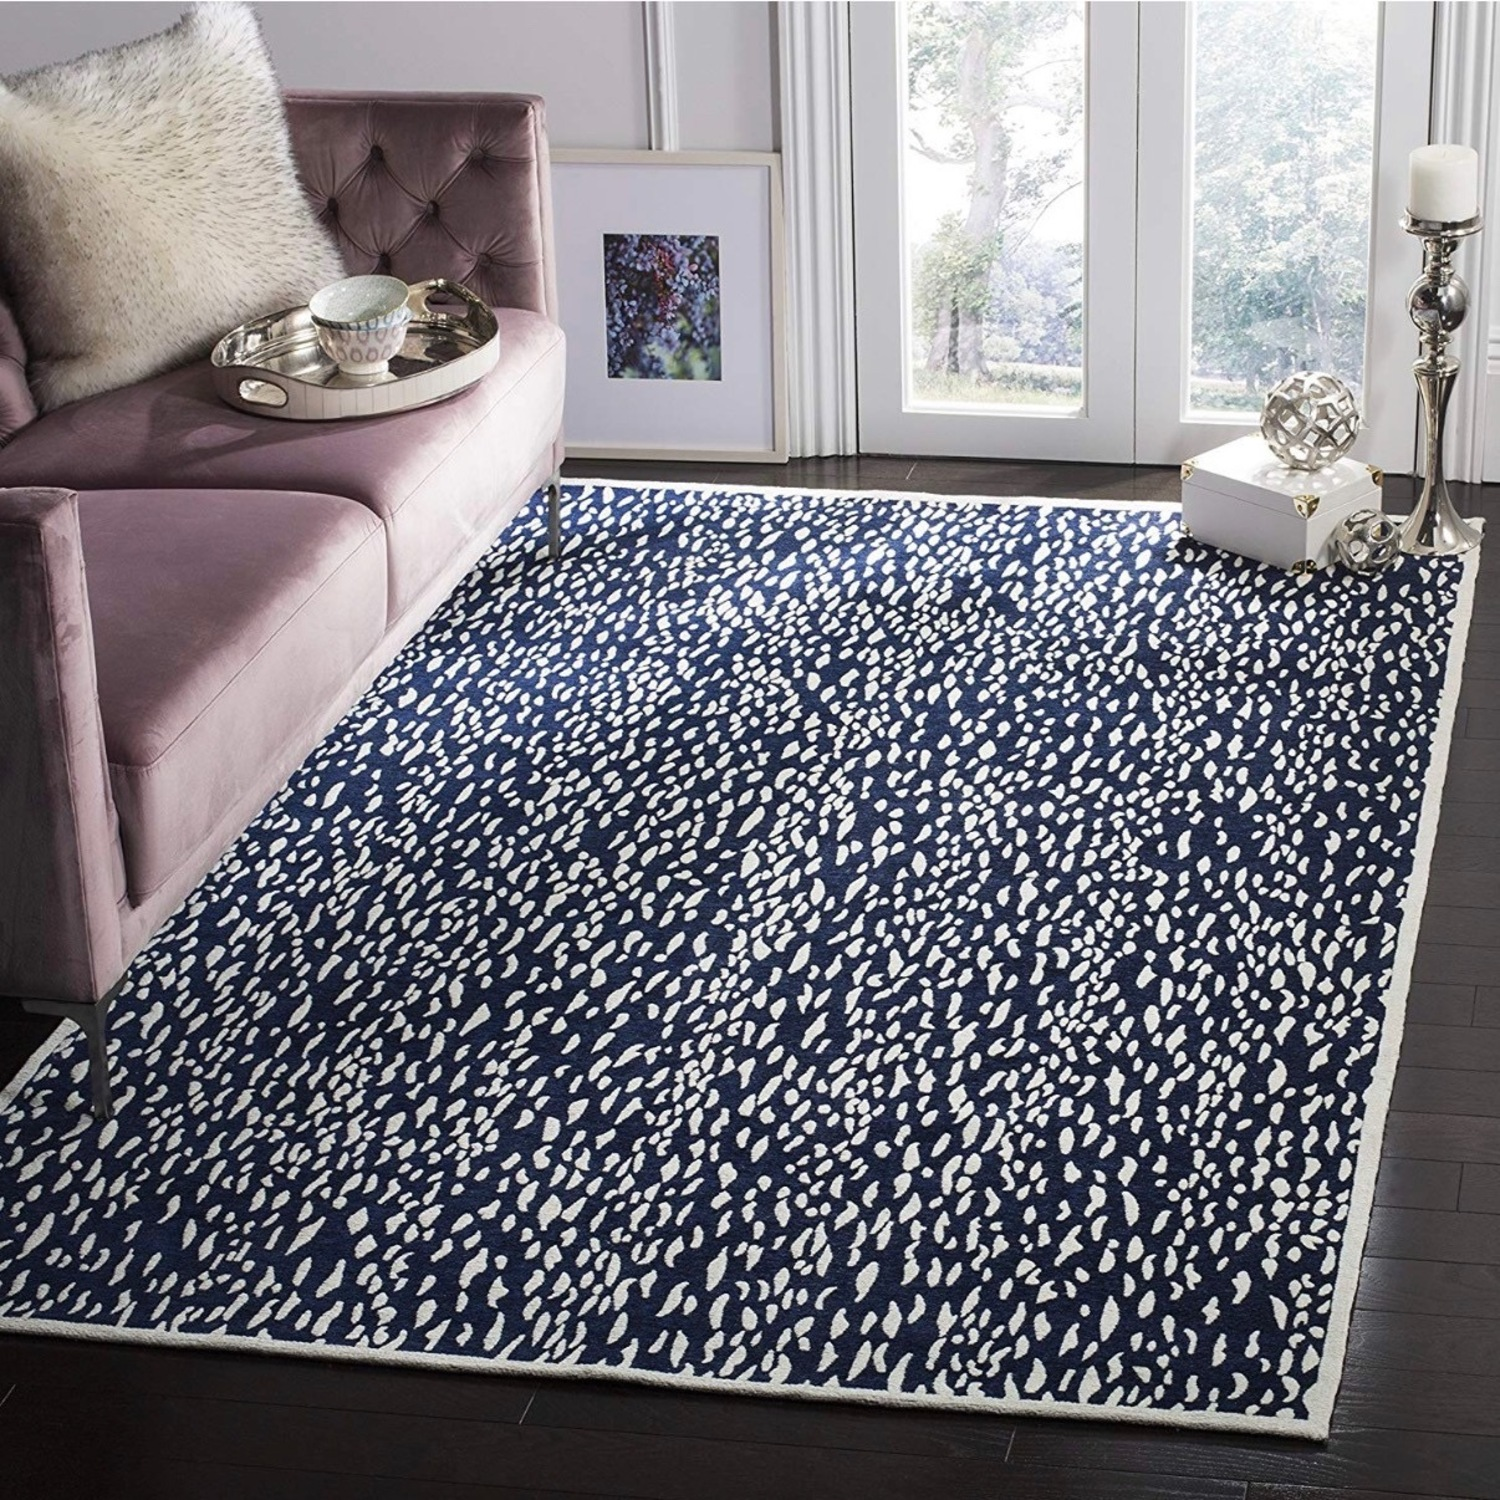 Safavieh Navy Blue and Ivory Area Rug - image-1